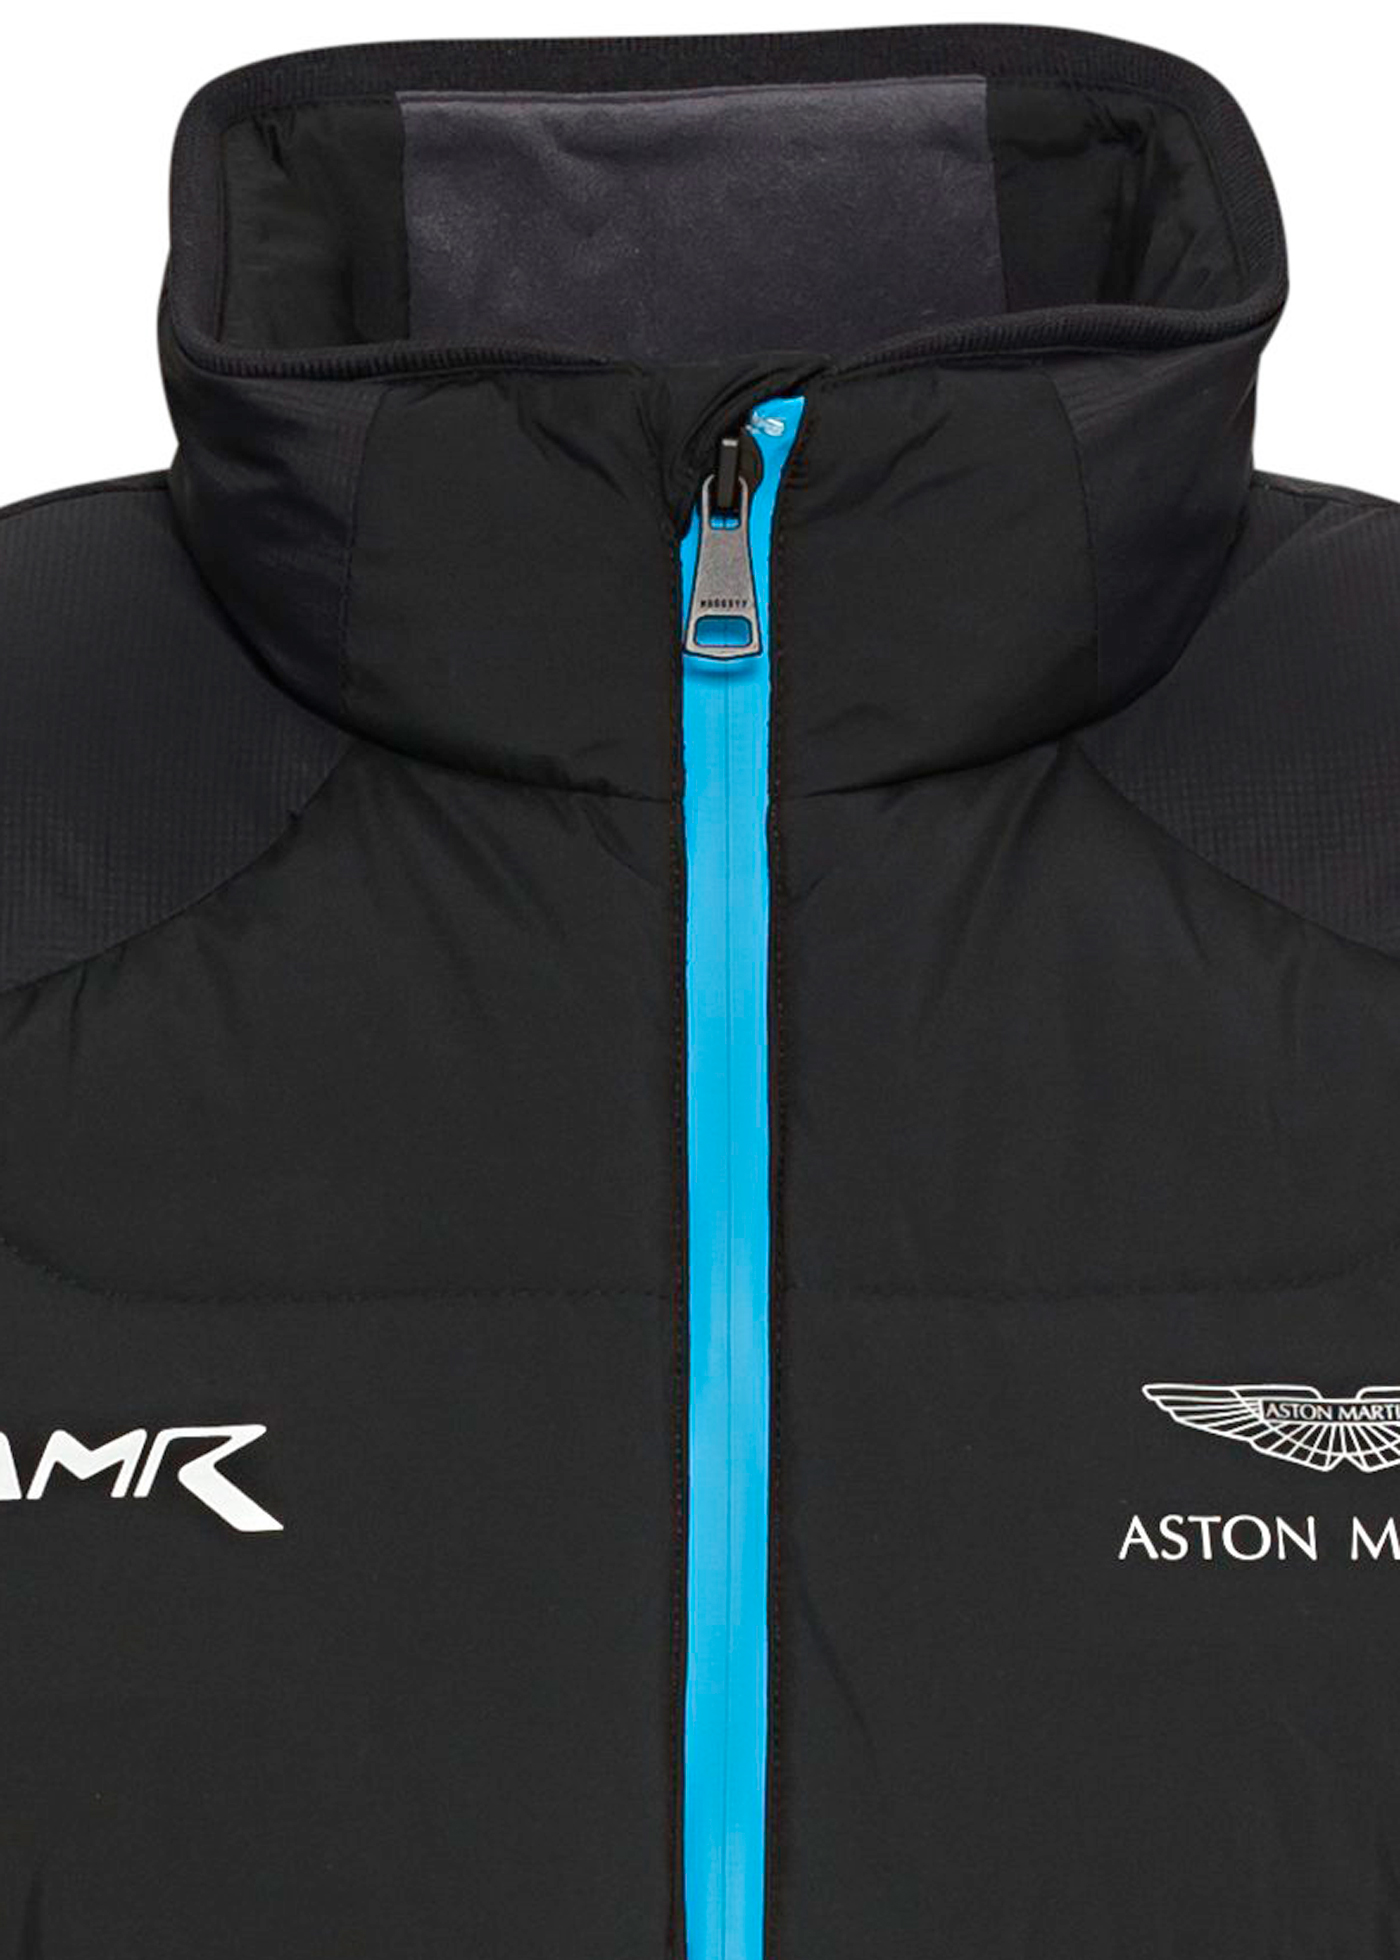 AMR ASTRO PACER GILET image number 2